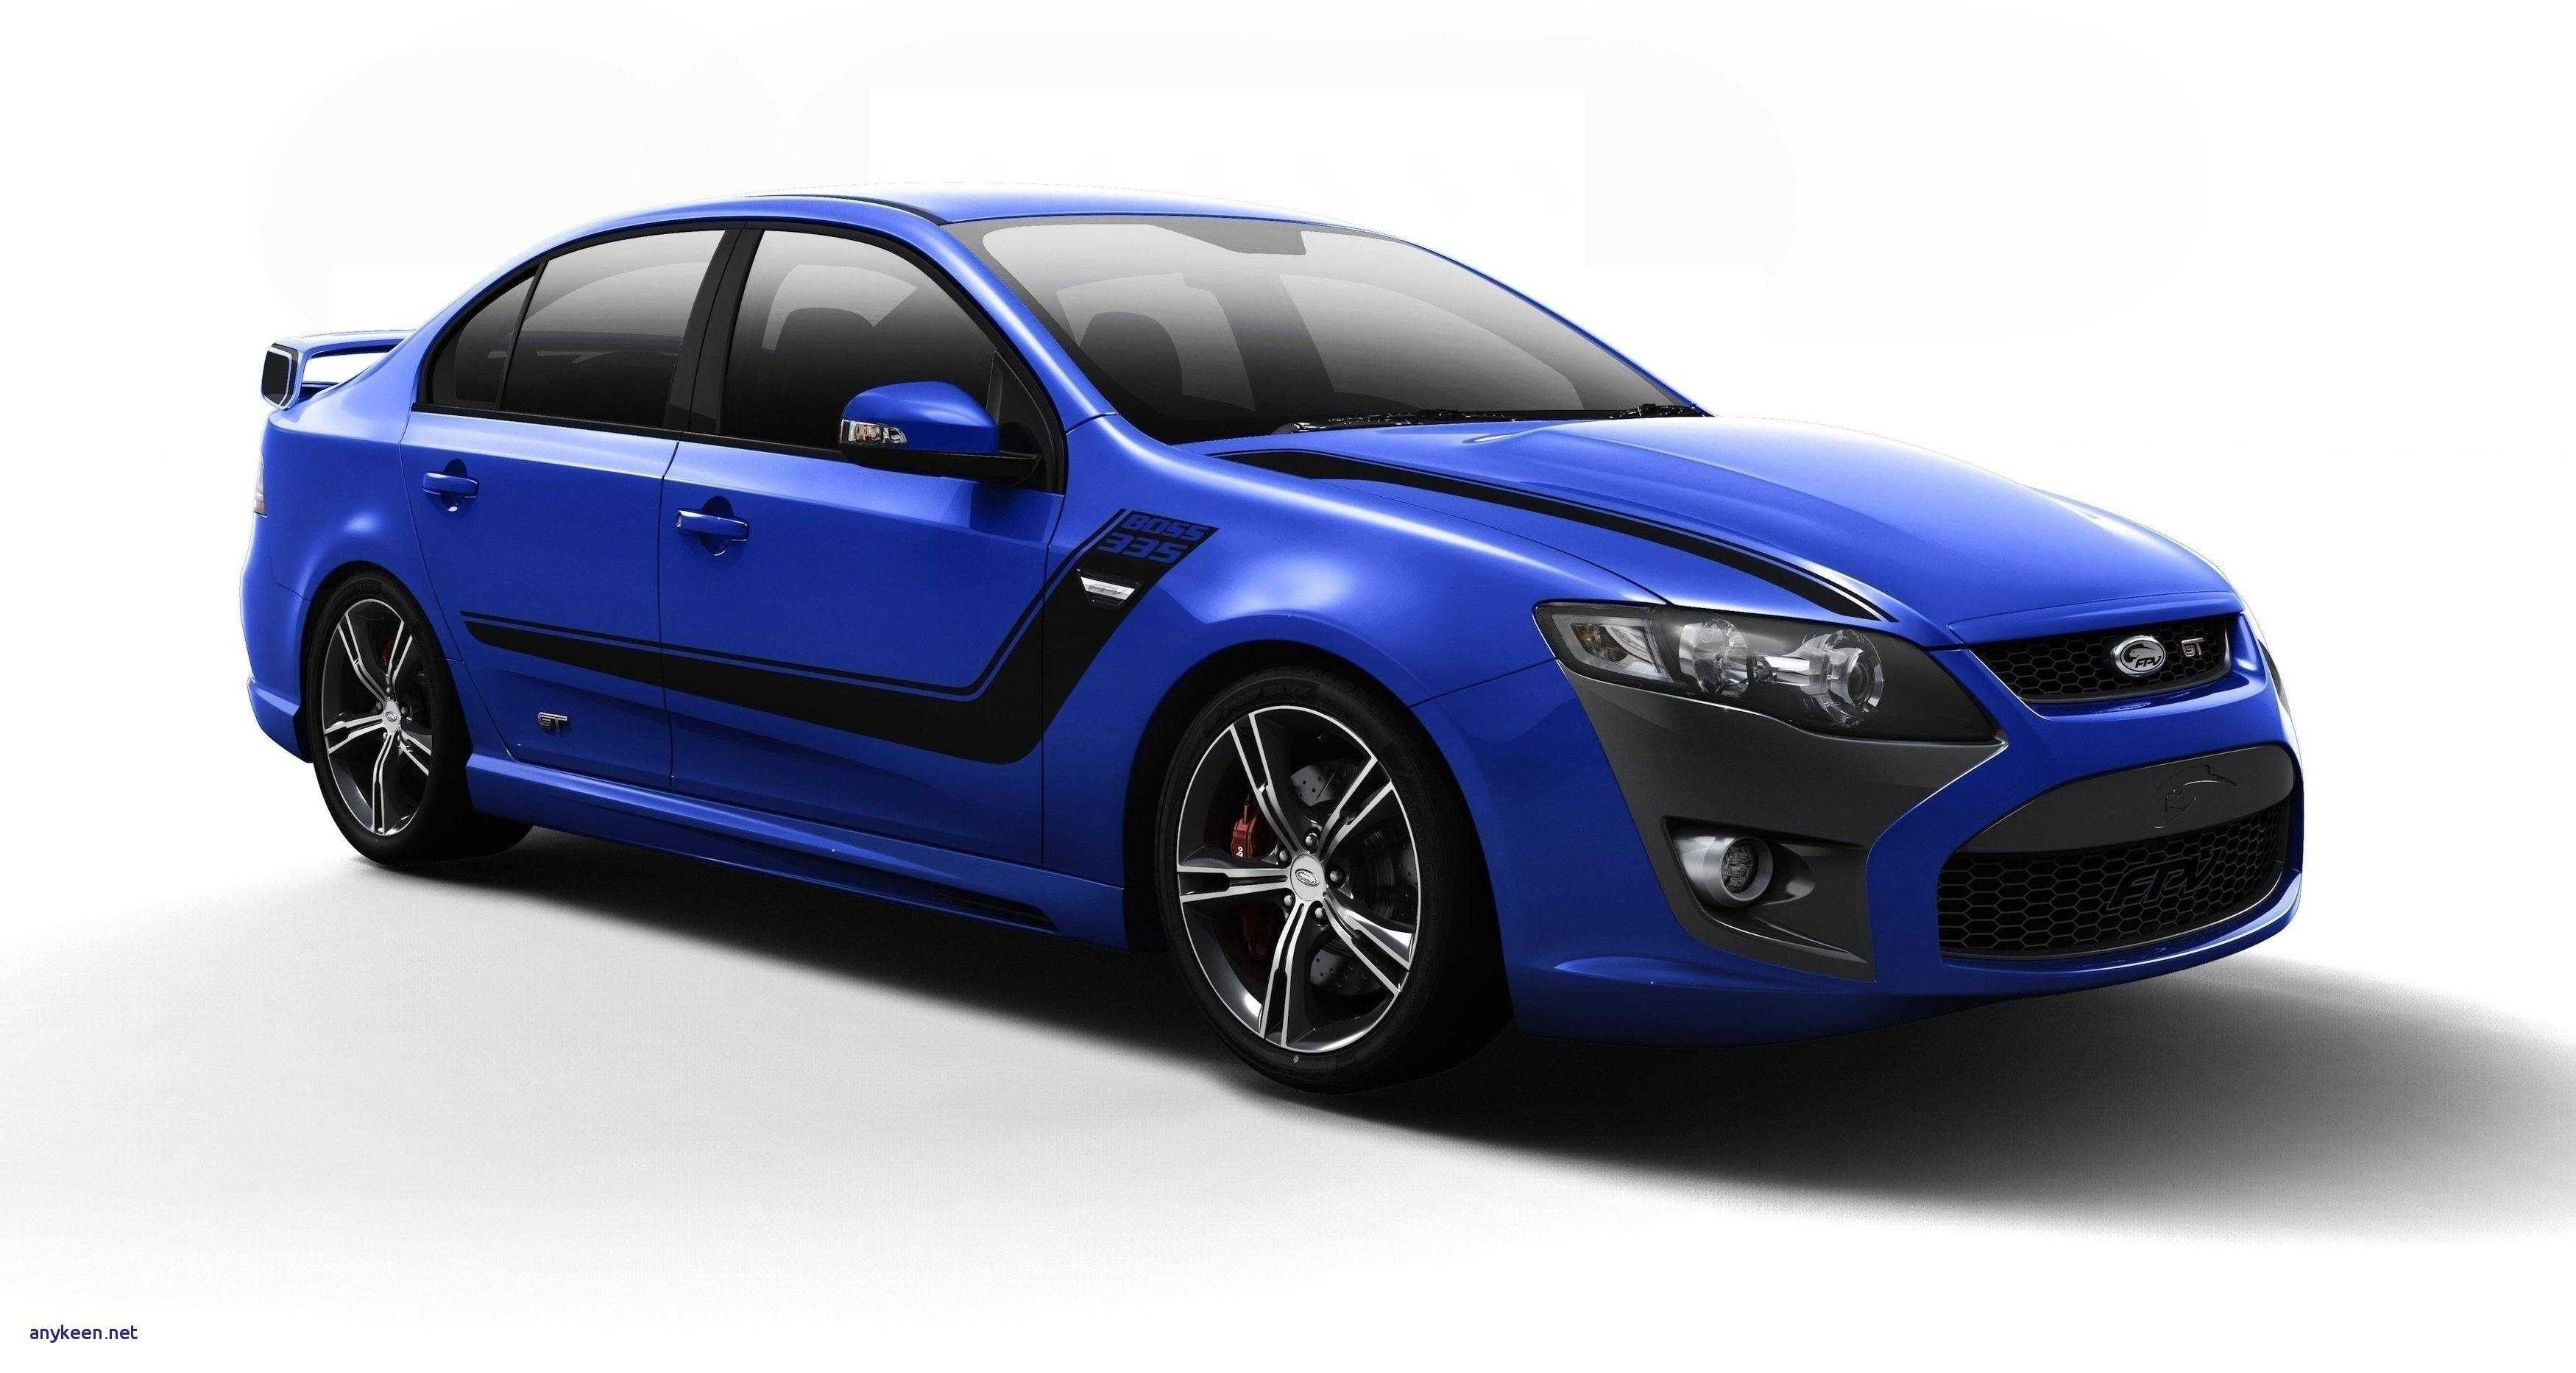 2019 Ford Falcon Xr8 Gt New Concept Ford Falcon Xr8 Ford Falcon Ford